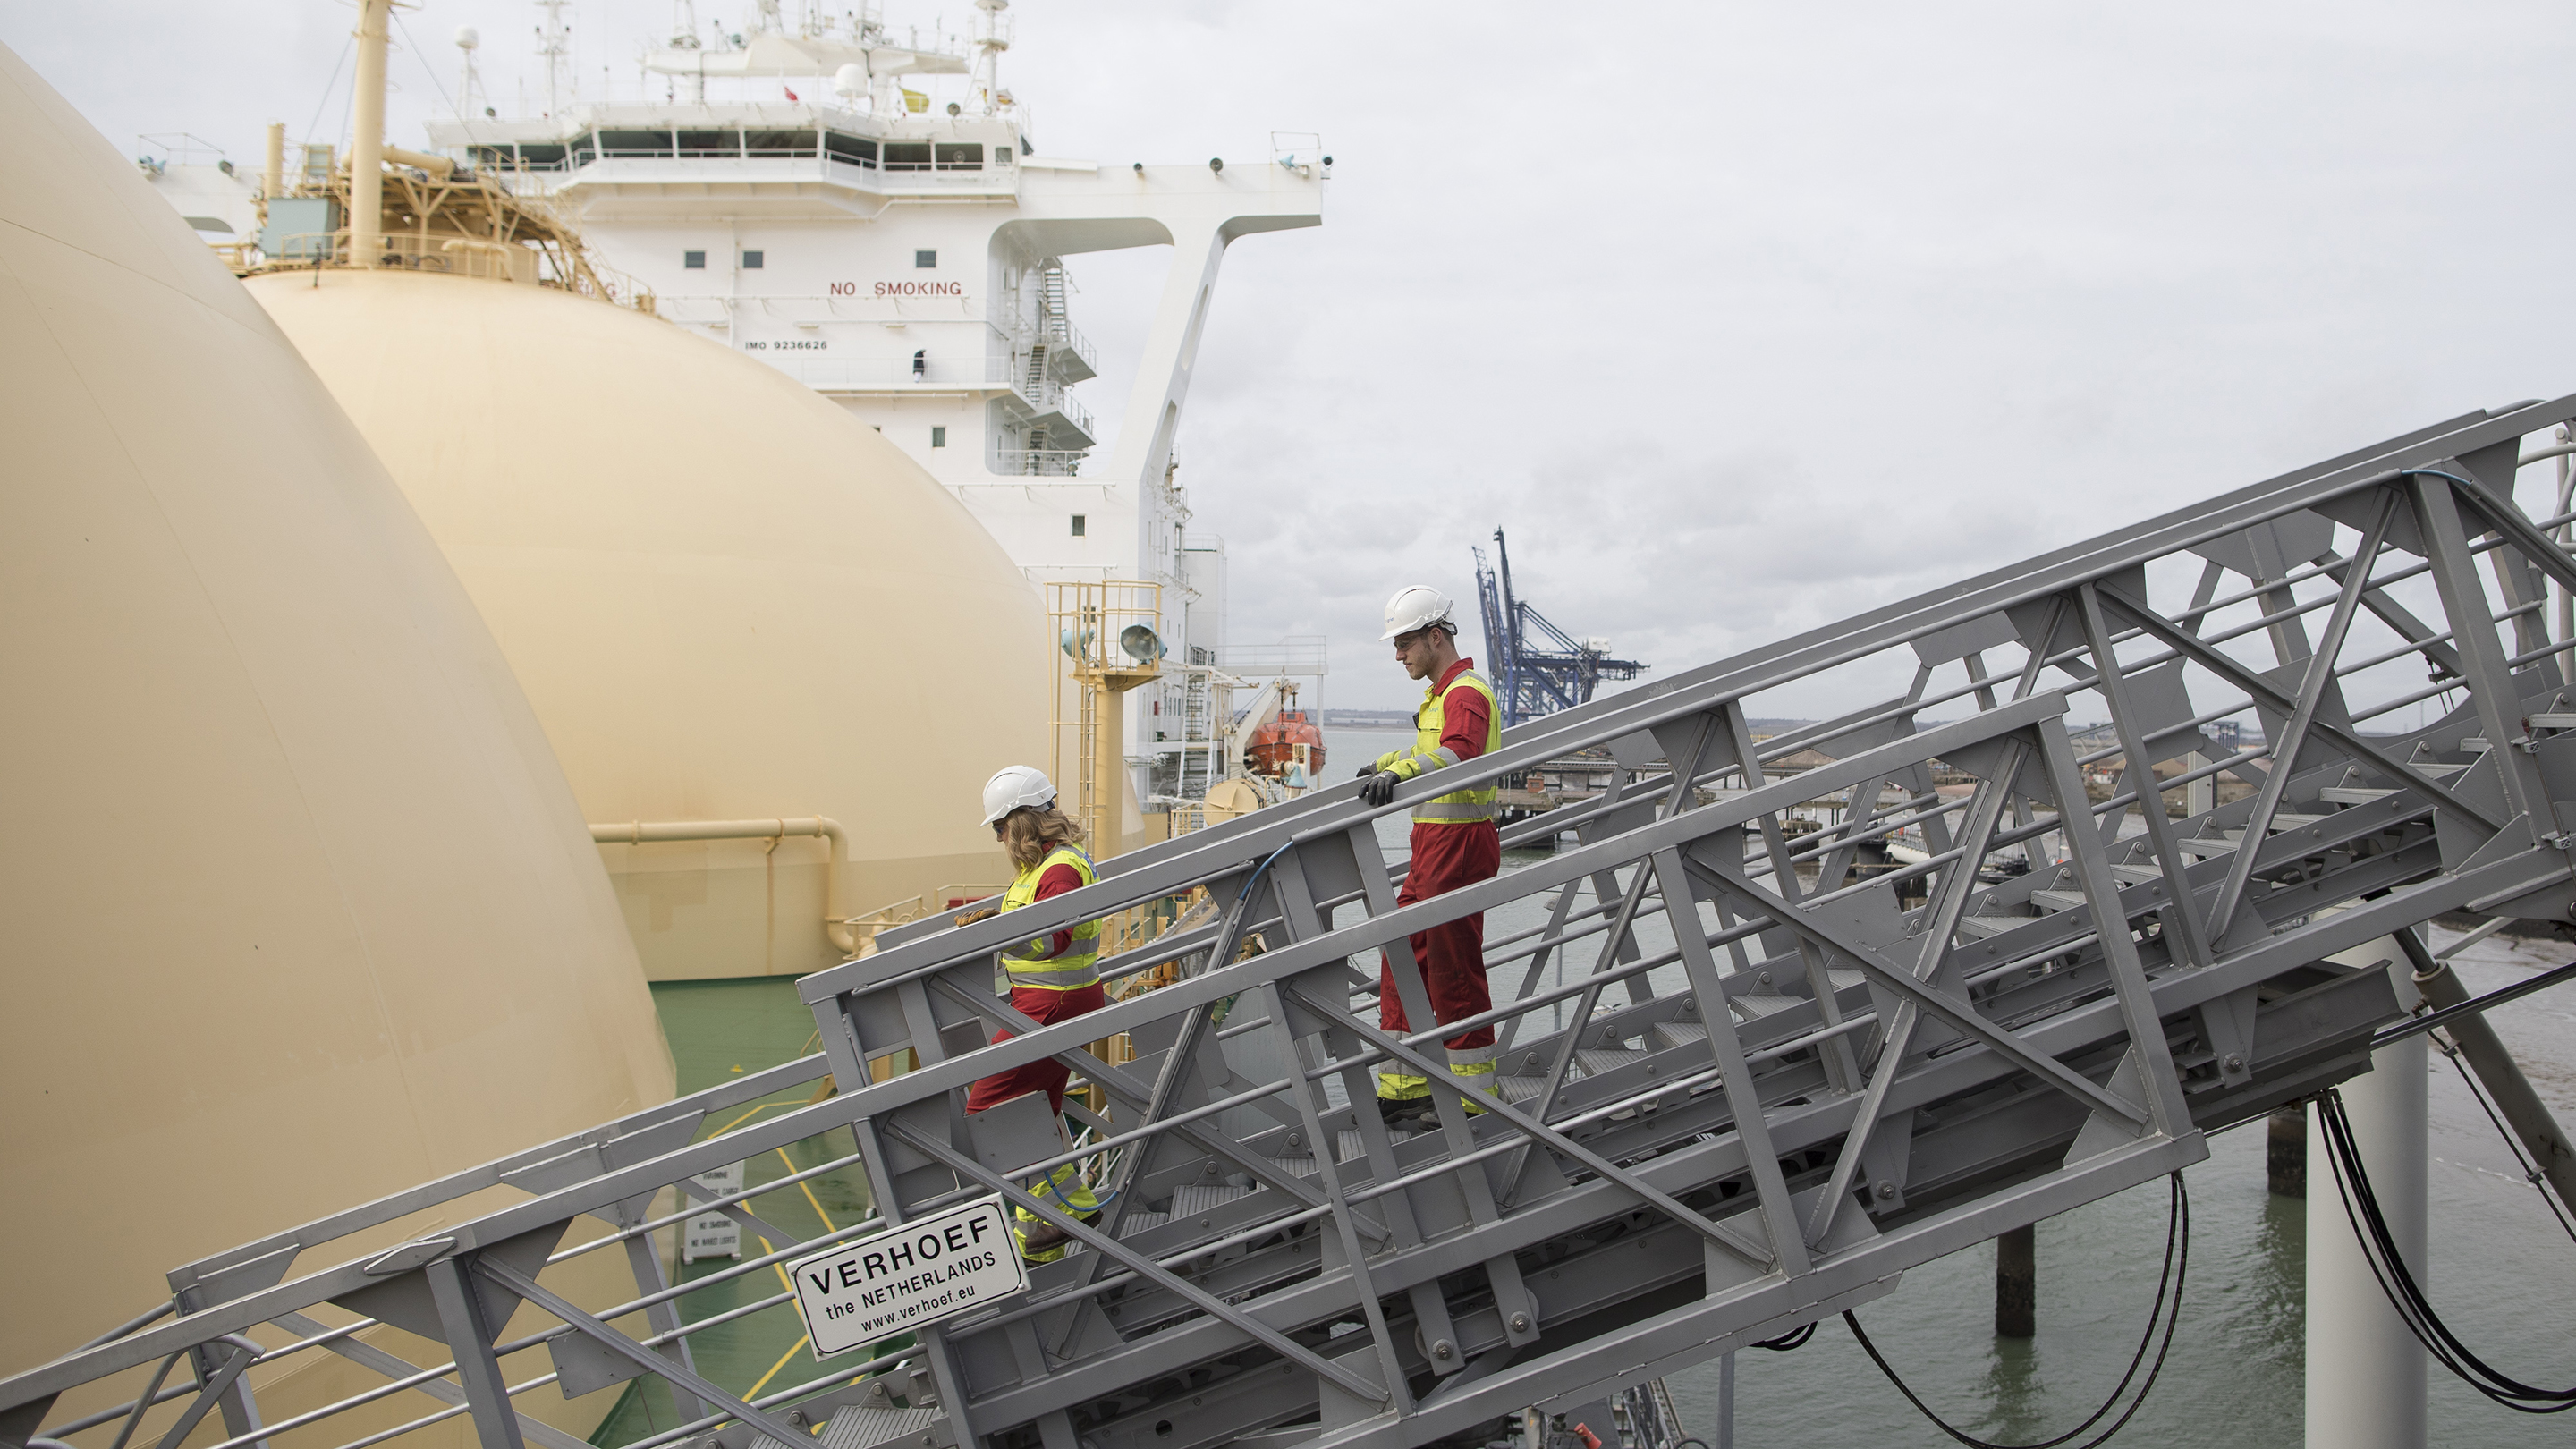 Shipment Of Liquefied Natural Gas (LNG) Arrives At National Grid Plc's GrainLNG Plant